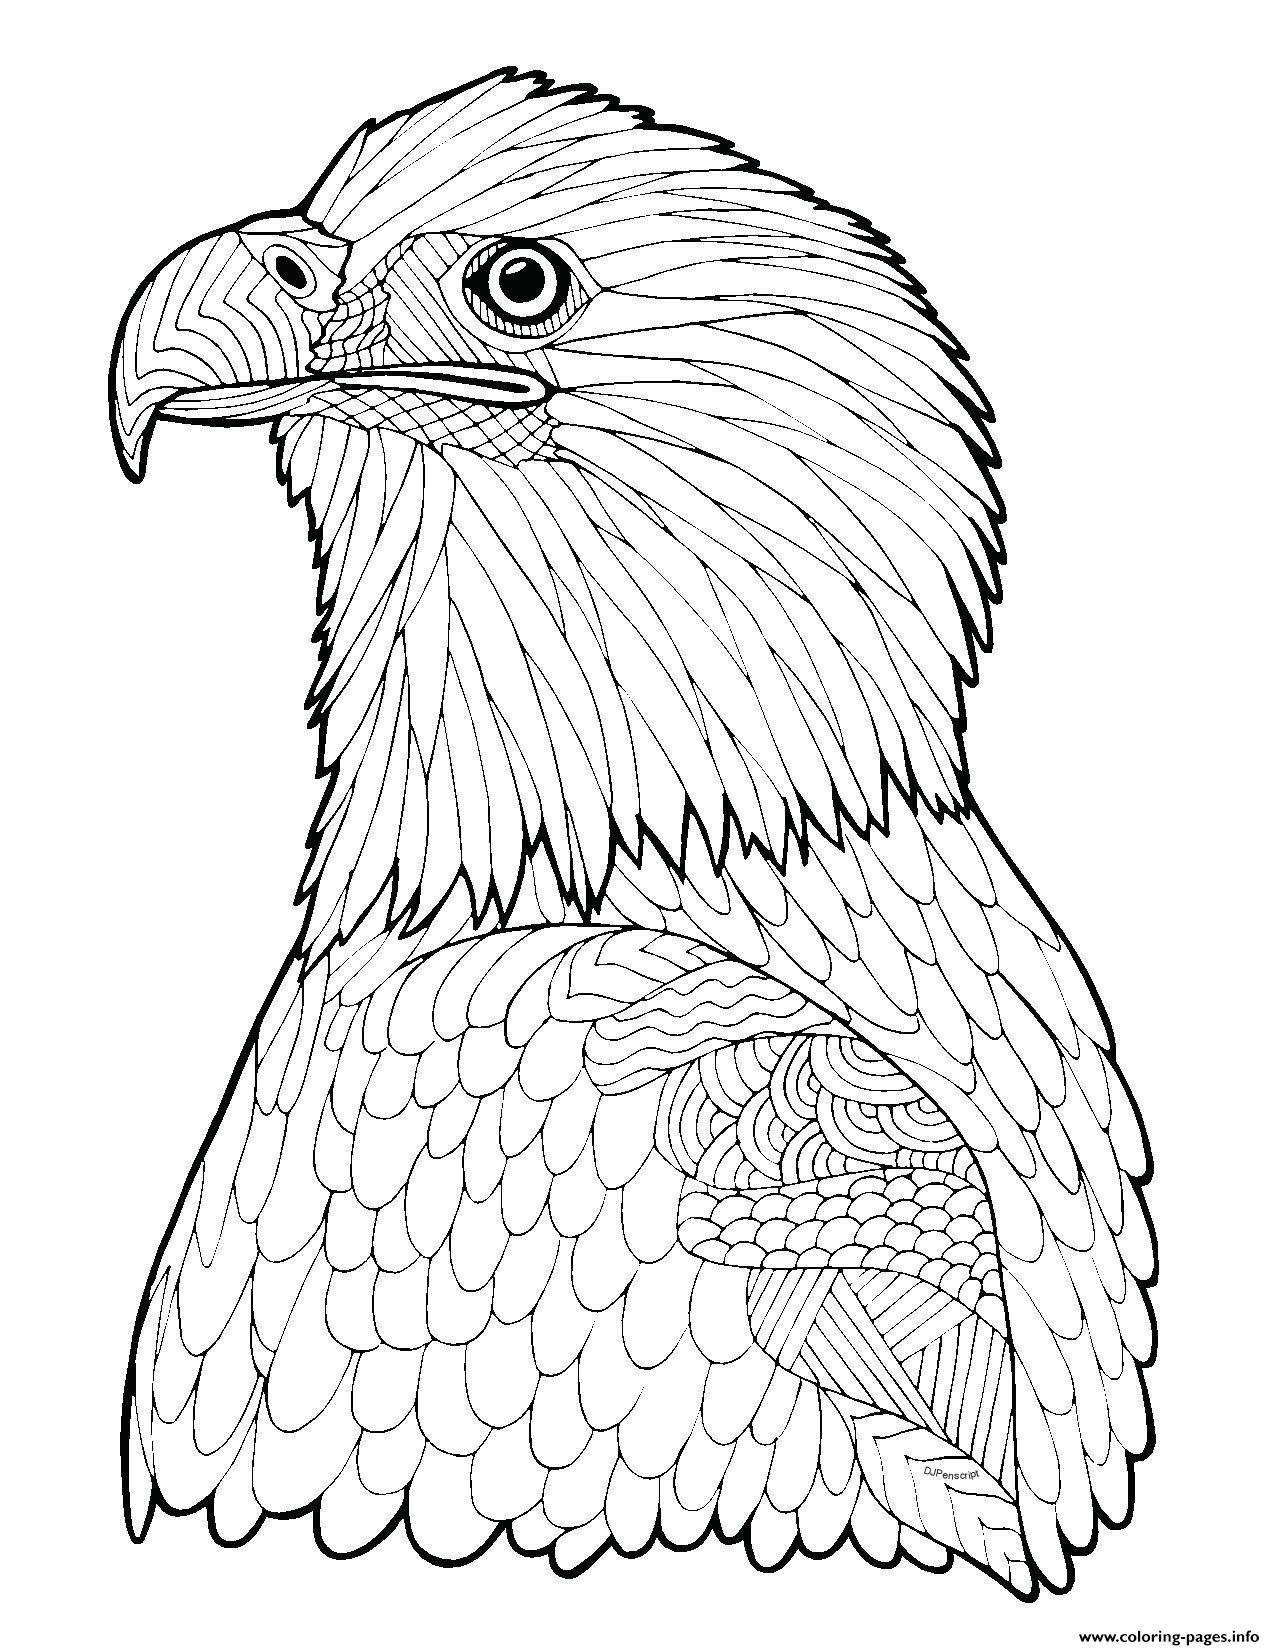 eagle coloring picture free eagle coloring pages eagle coloring picture